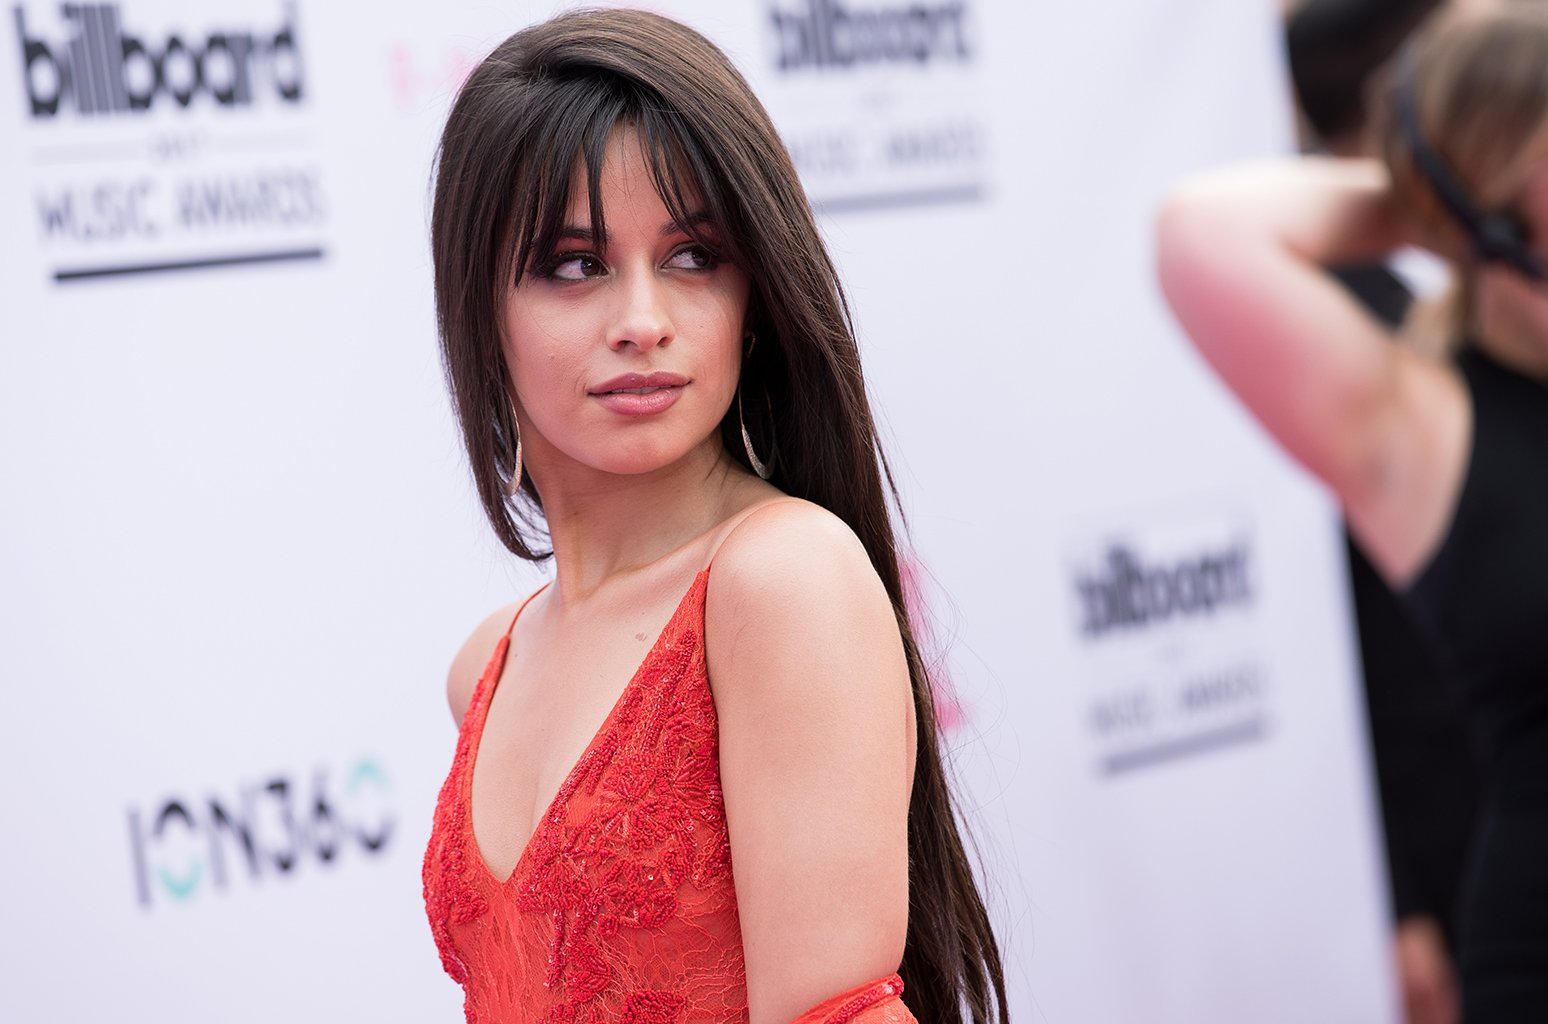 Camila Cabello announces Kane Brown remix of 'Never Be the Same' https://t.co/y2OkTf2sDz https://t.co/bkjTCwDkkh